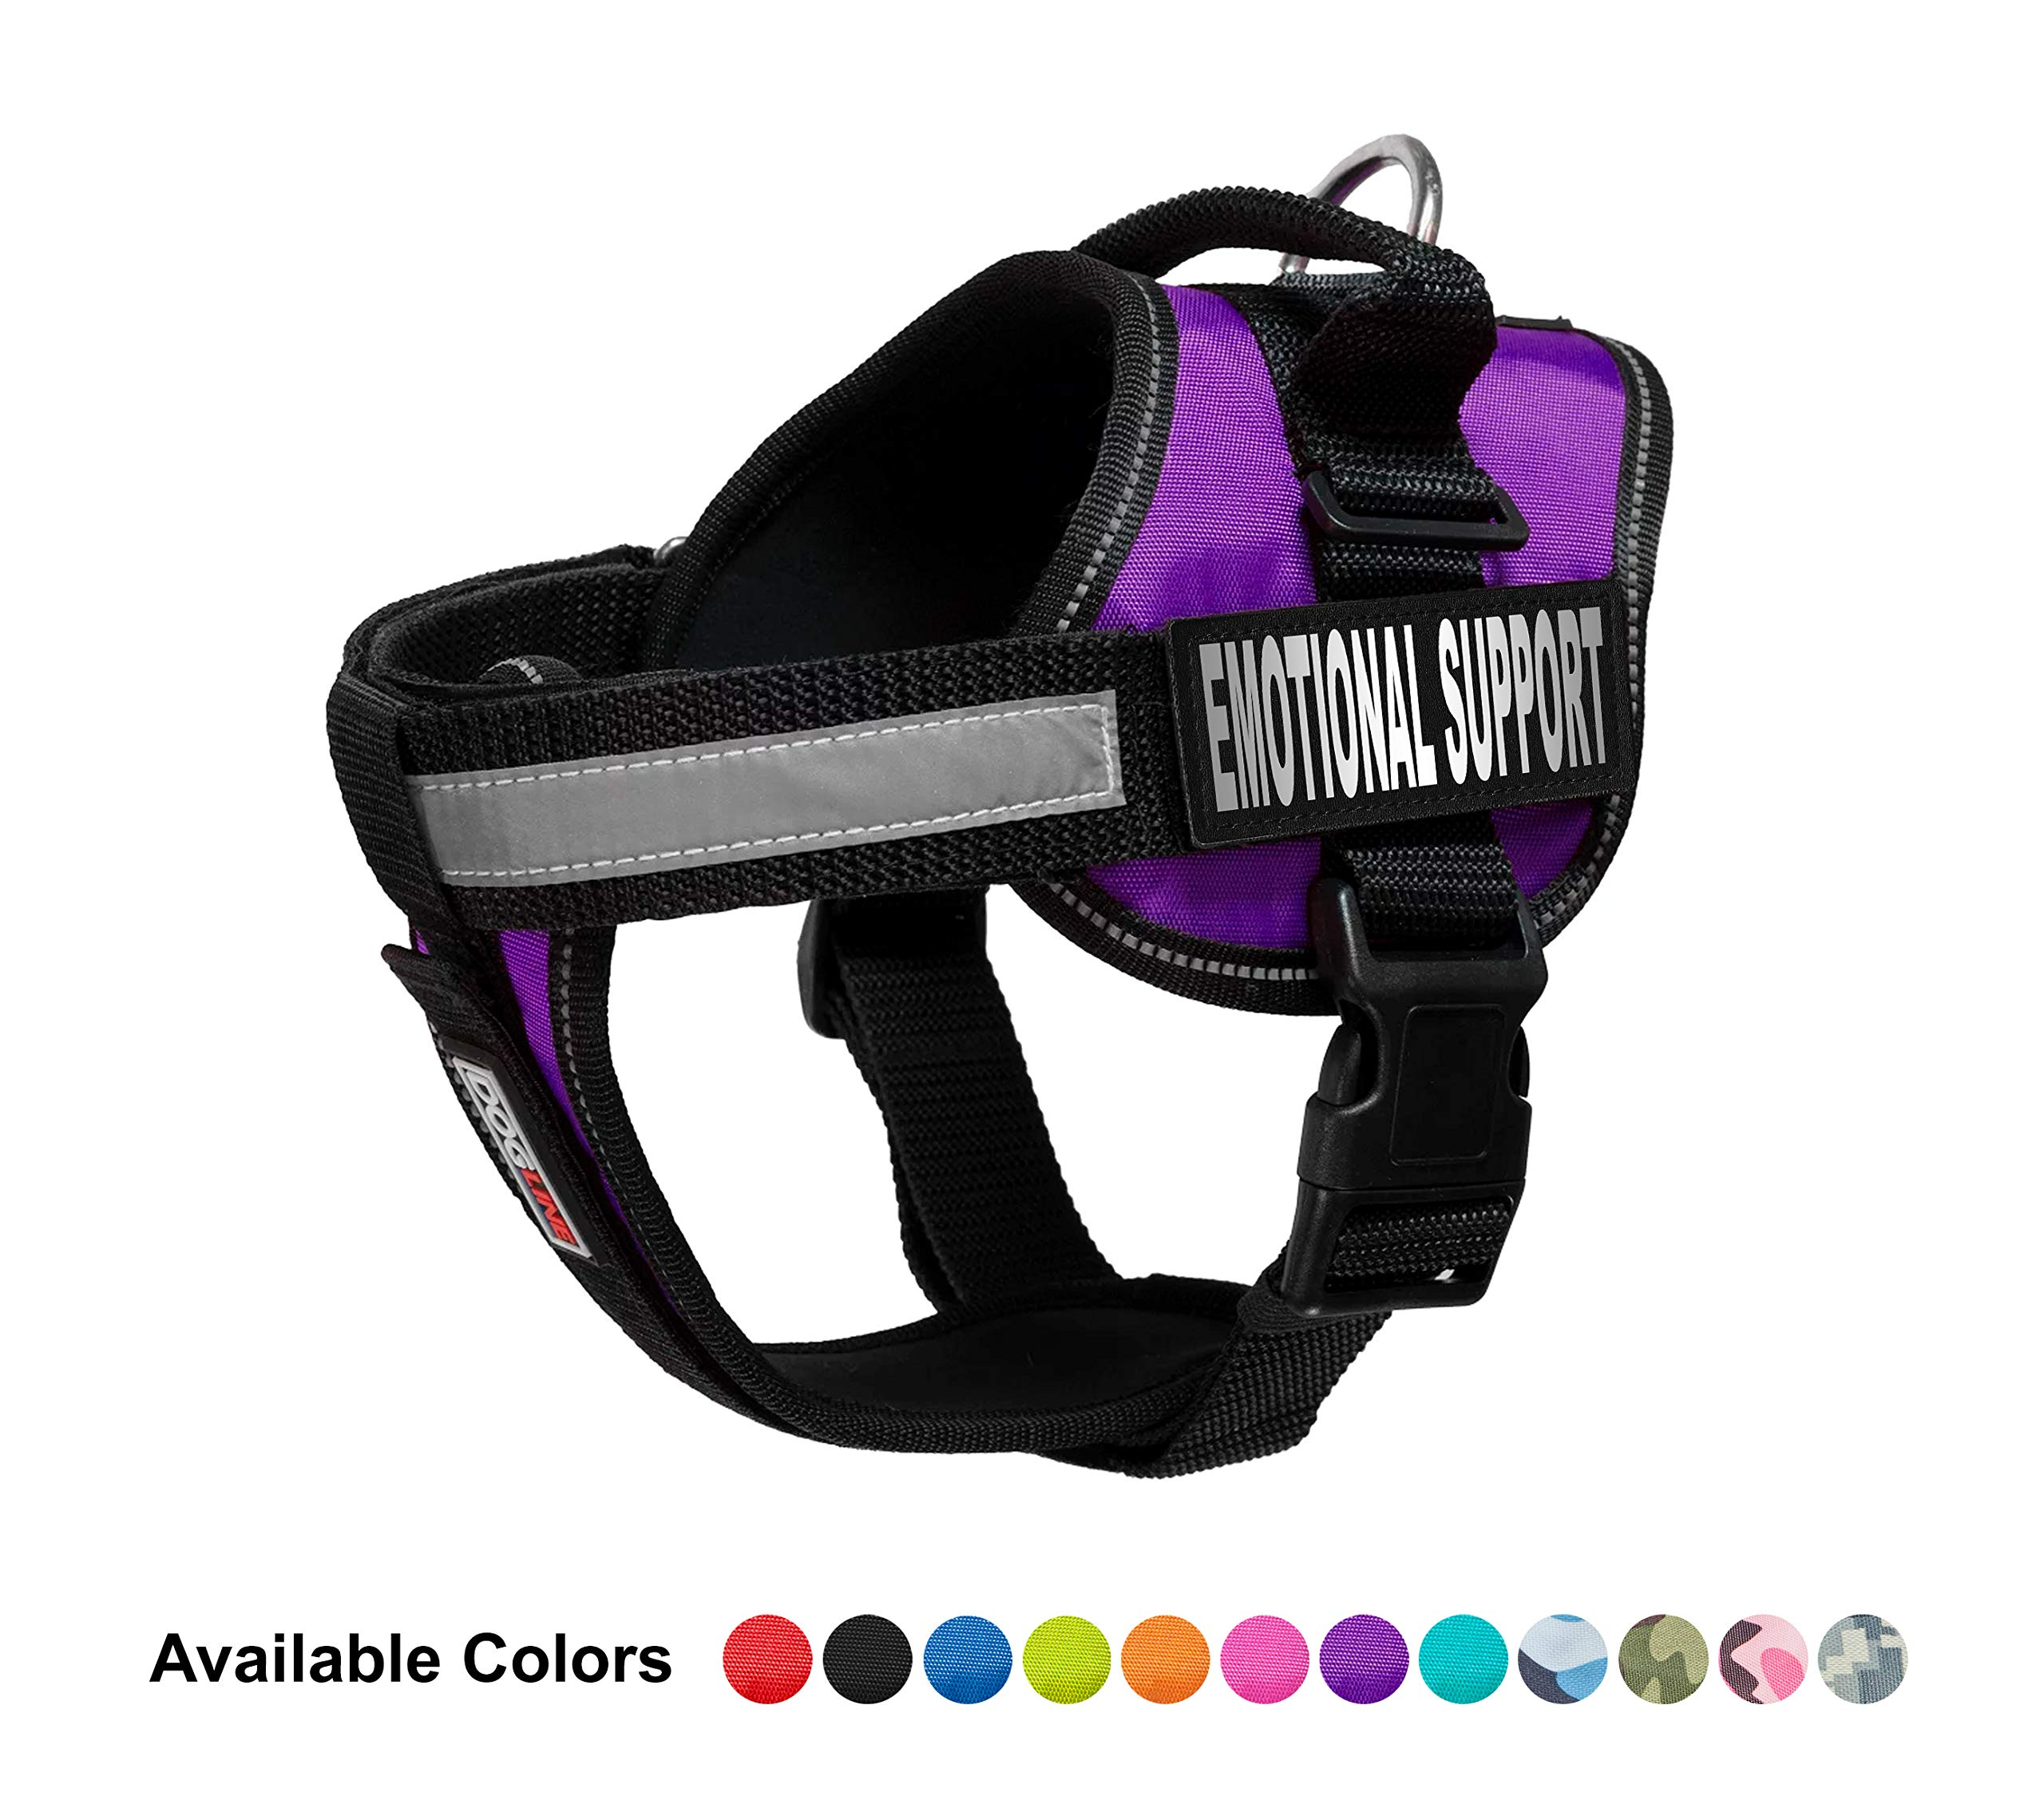 Dogline Vest Harness for Dogs and 2 Removable Emotional Support Patches, Medium/22 to 30'', Purple